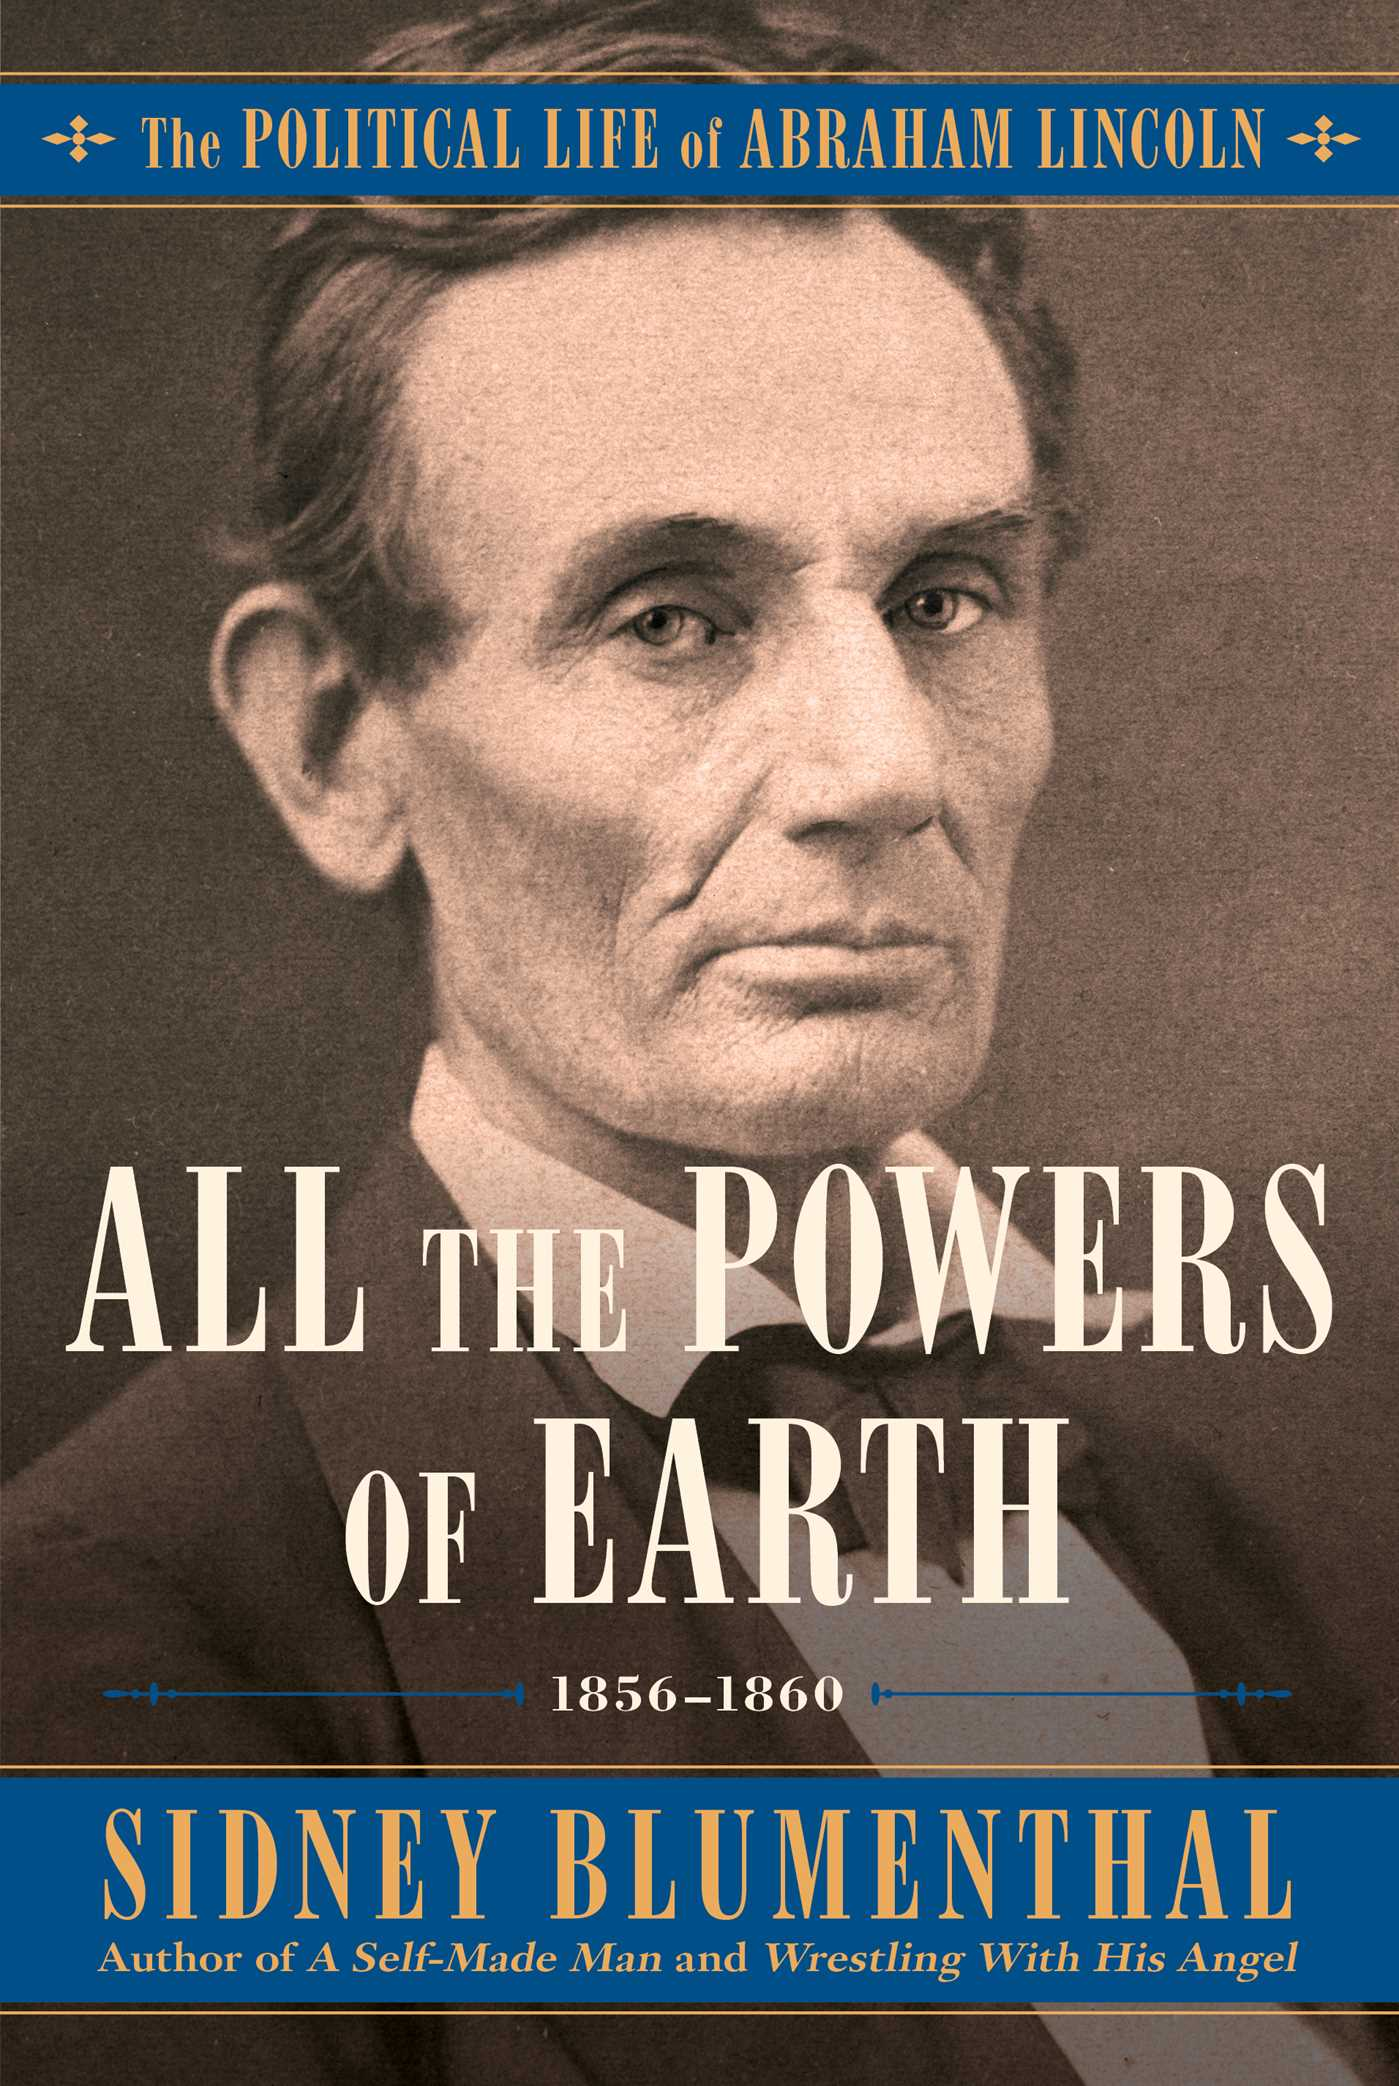 All the Powers of Earth: The Political Life of Abraham Lincoln Vol. III, 1856-1860